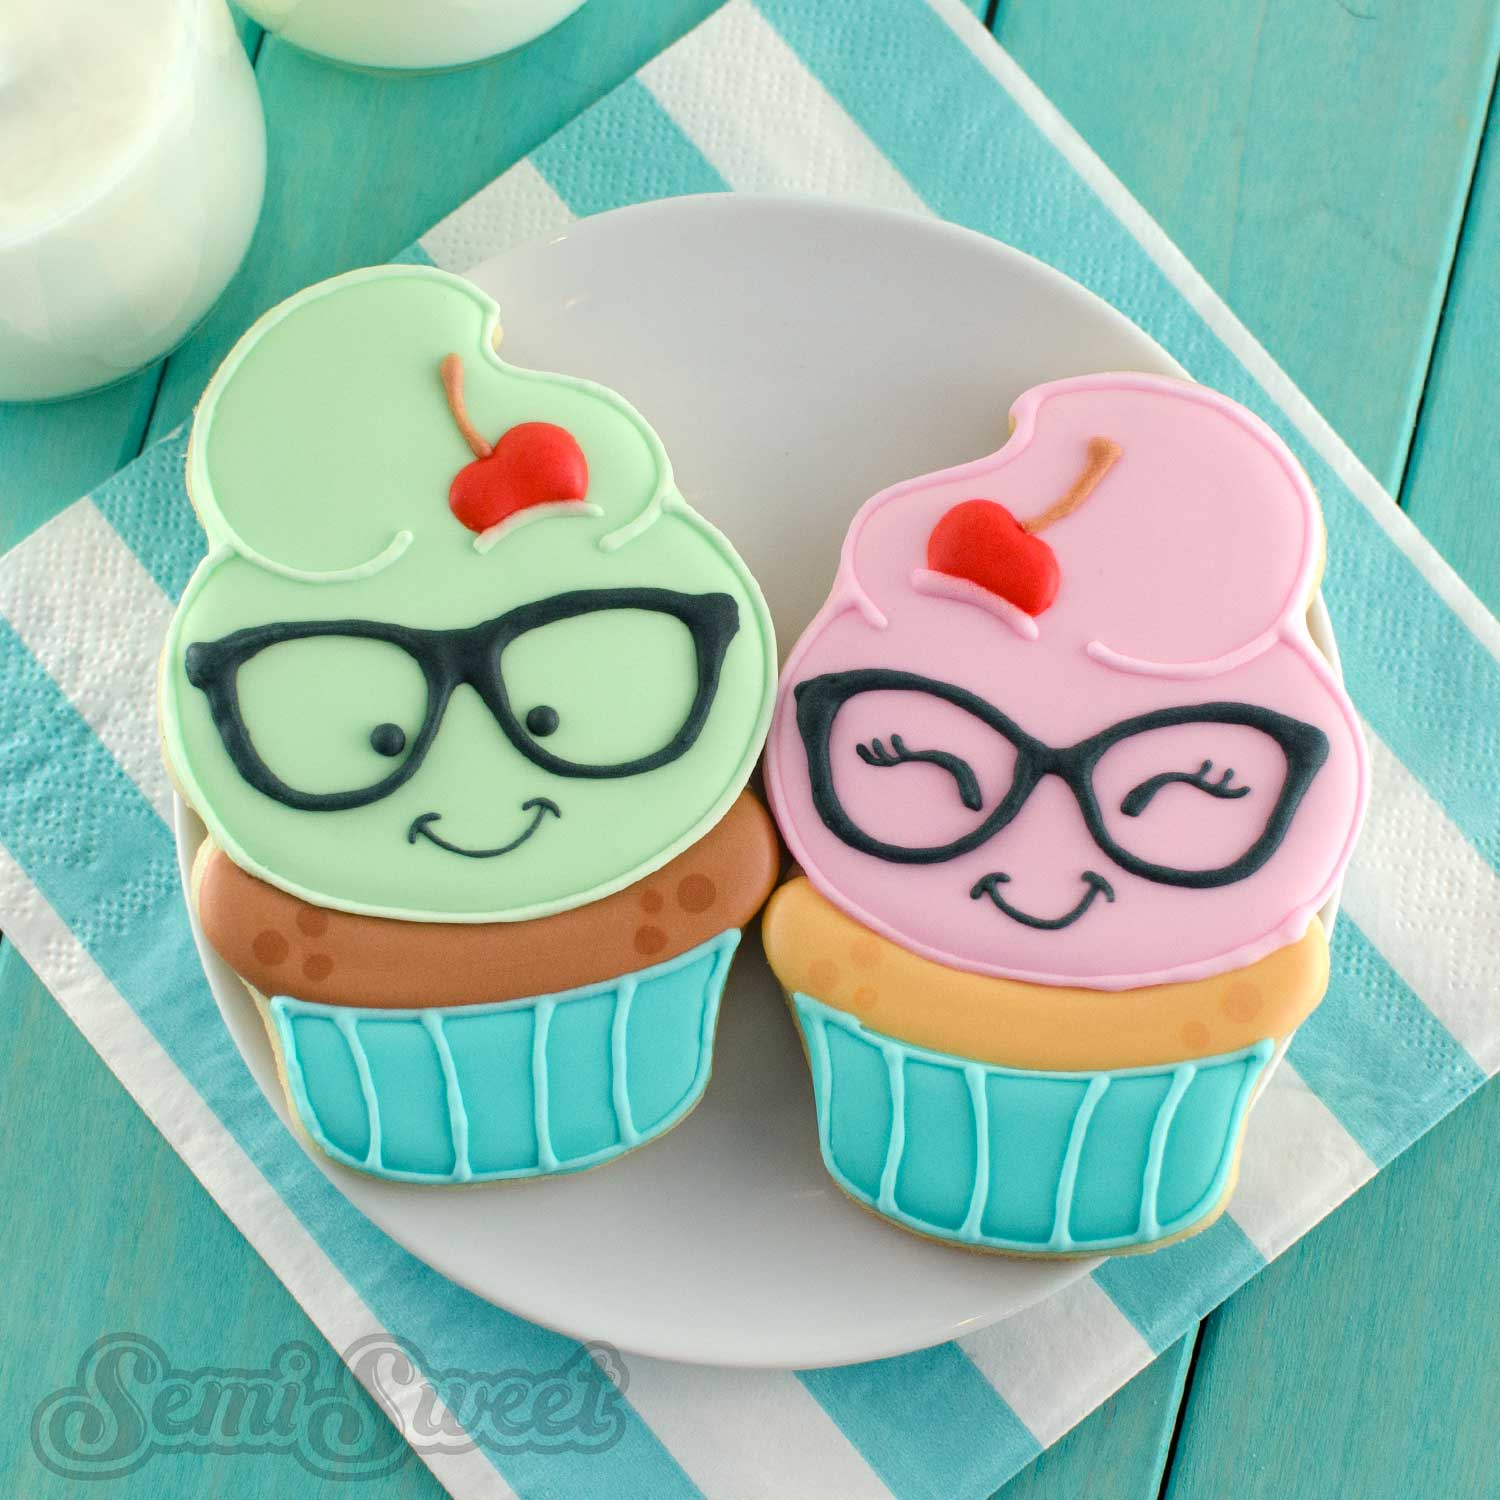 How to Make Nerdy Cupcake Cookies